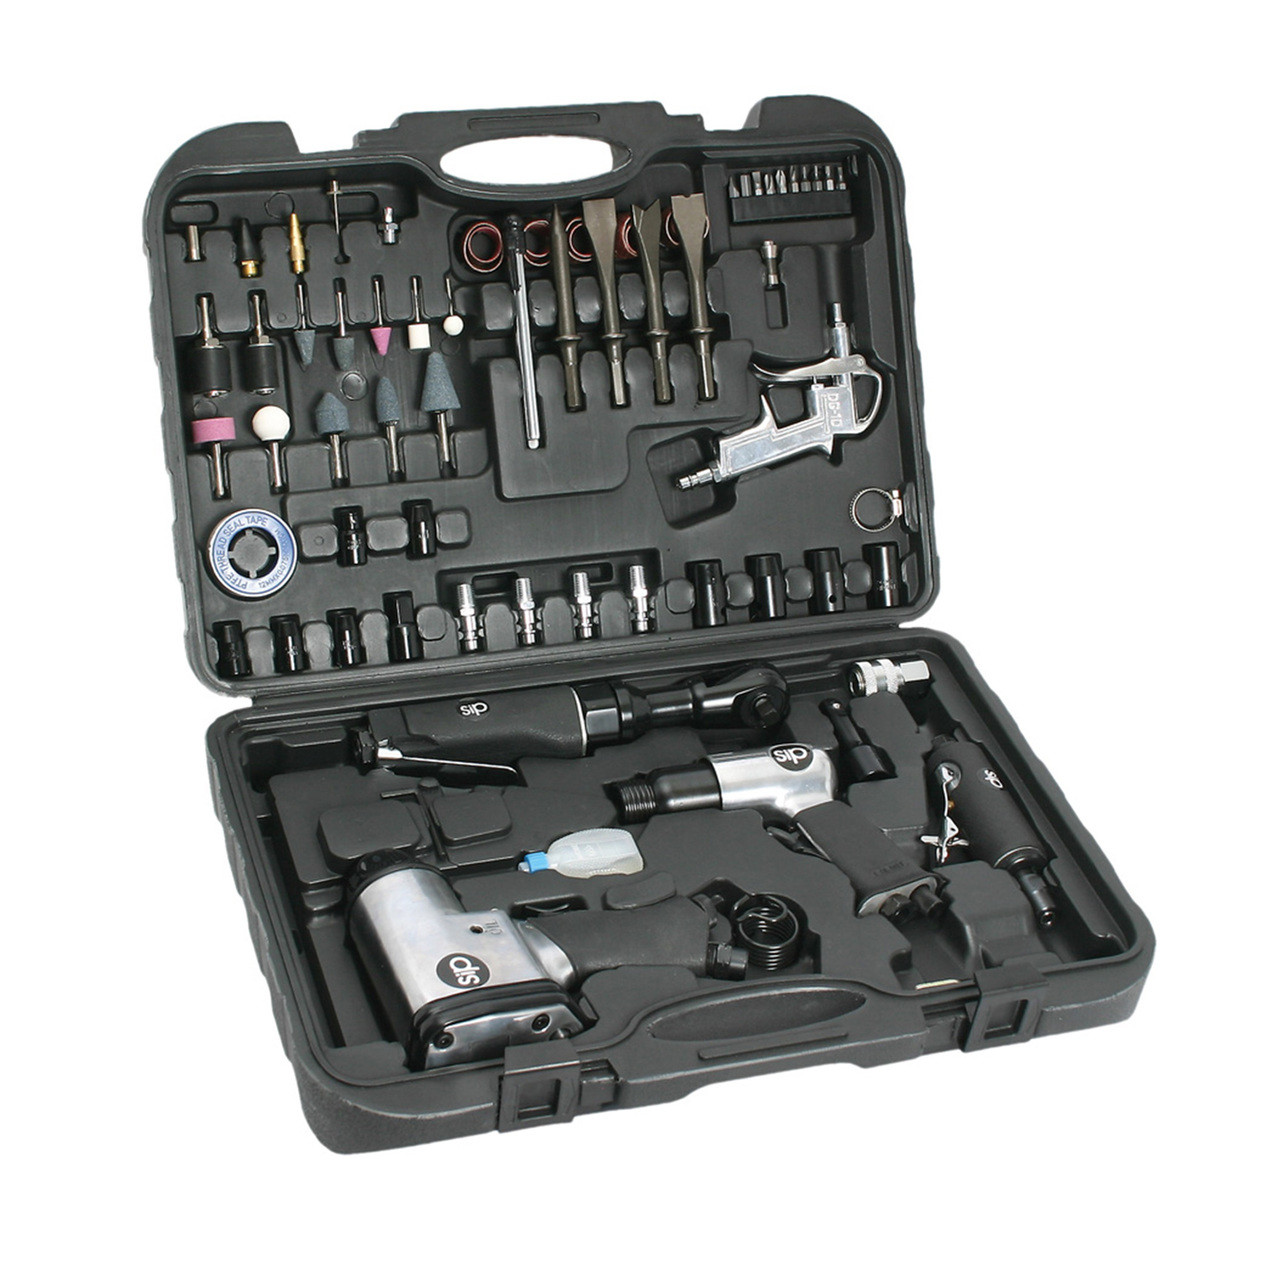 Sip 07197 73 piece air tool kit mcquillan tools for Sip kits